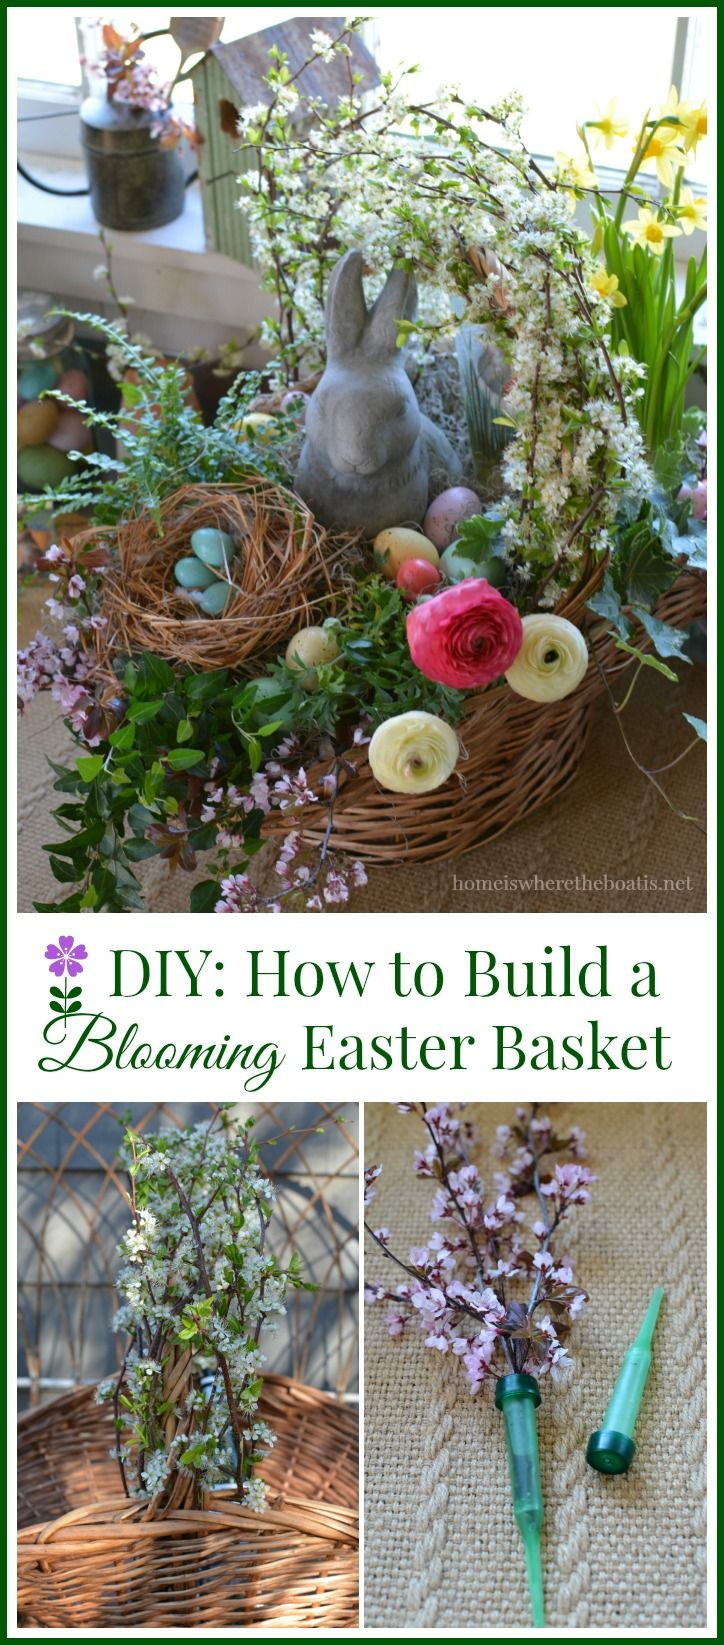 Blooming Easter Basket DIY